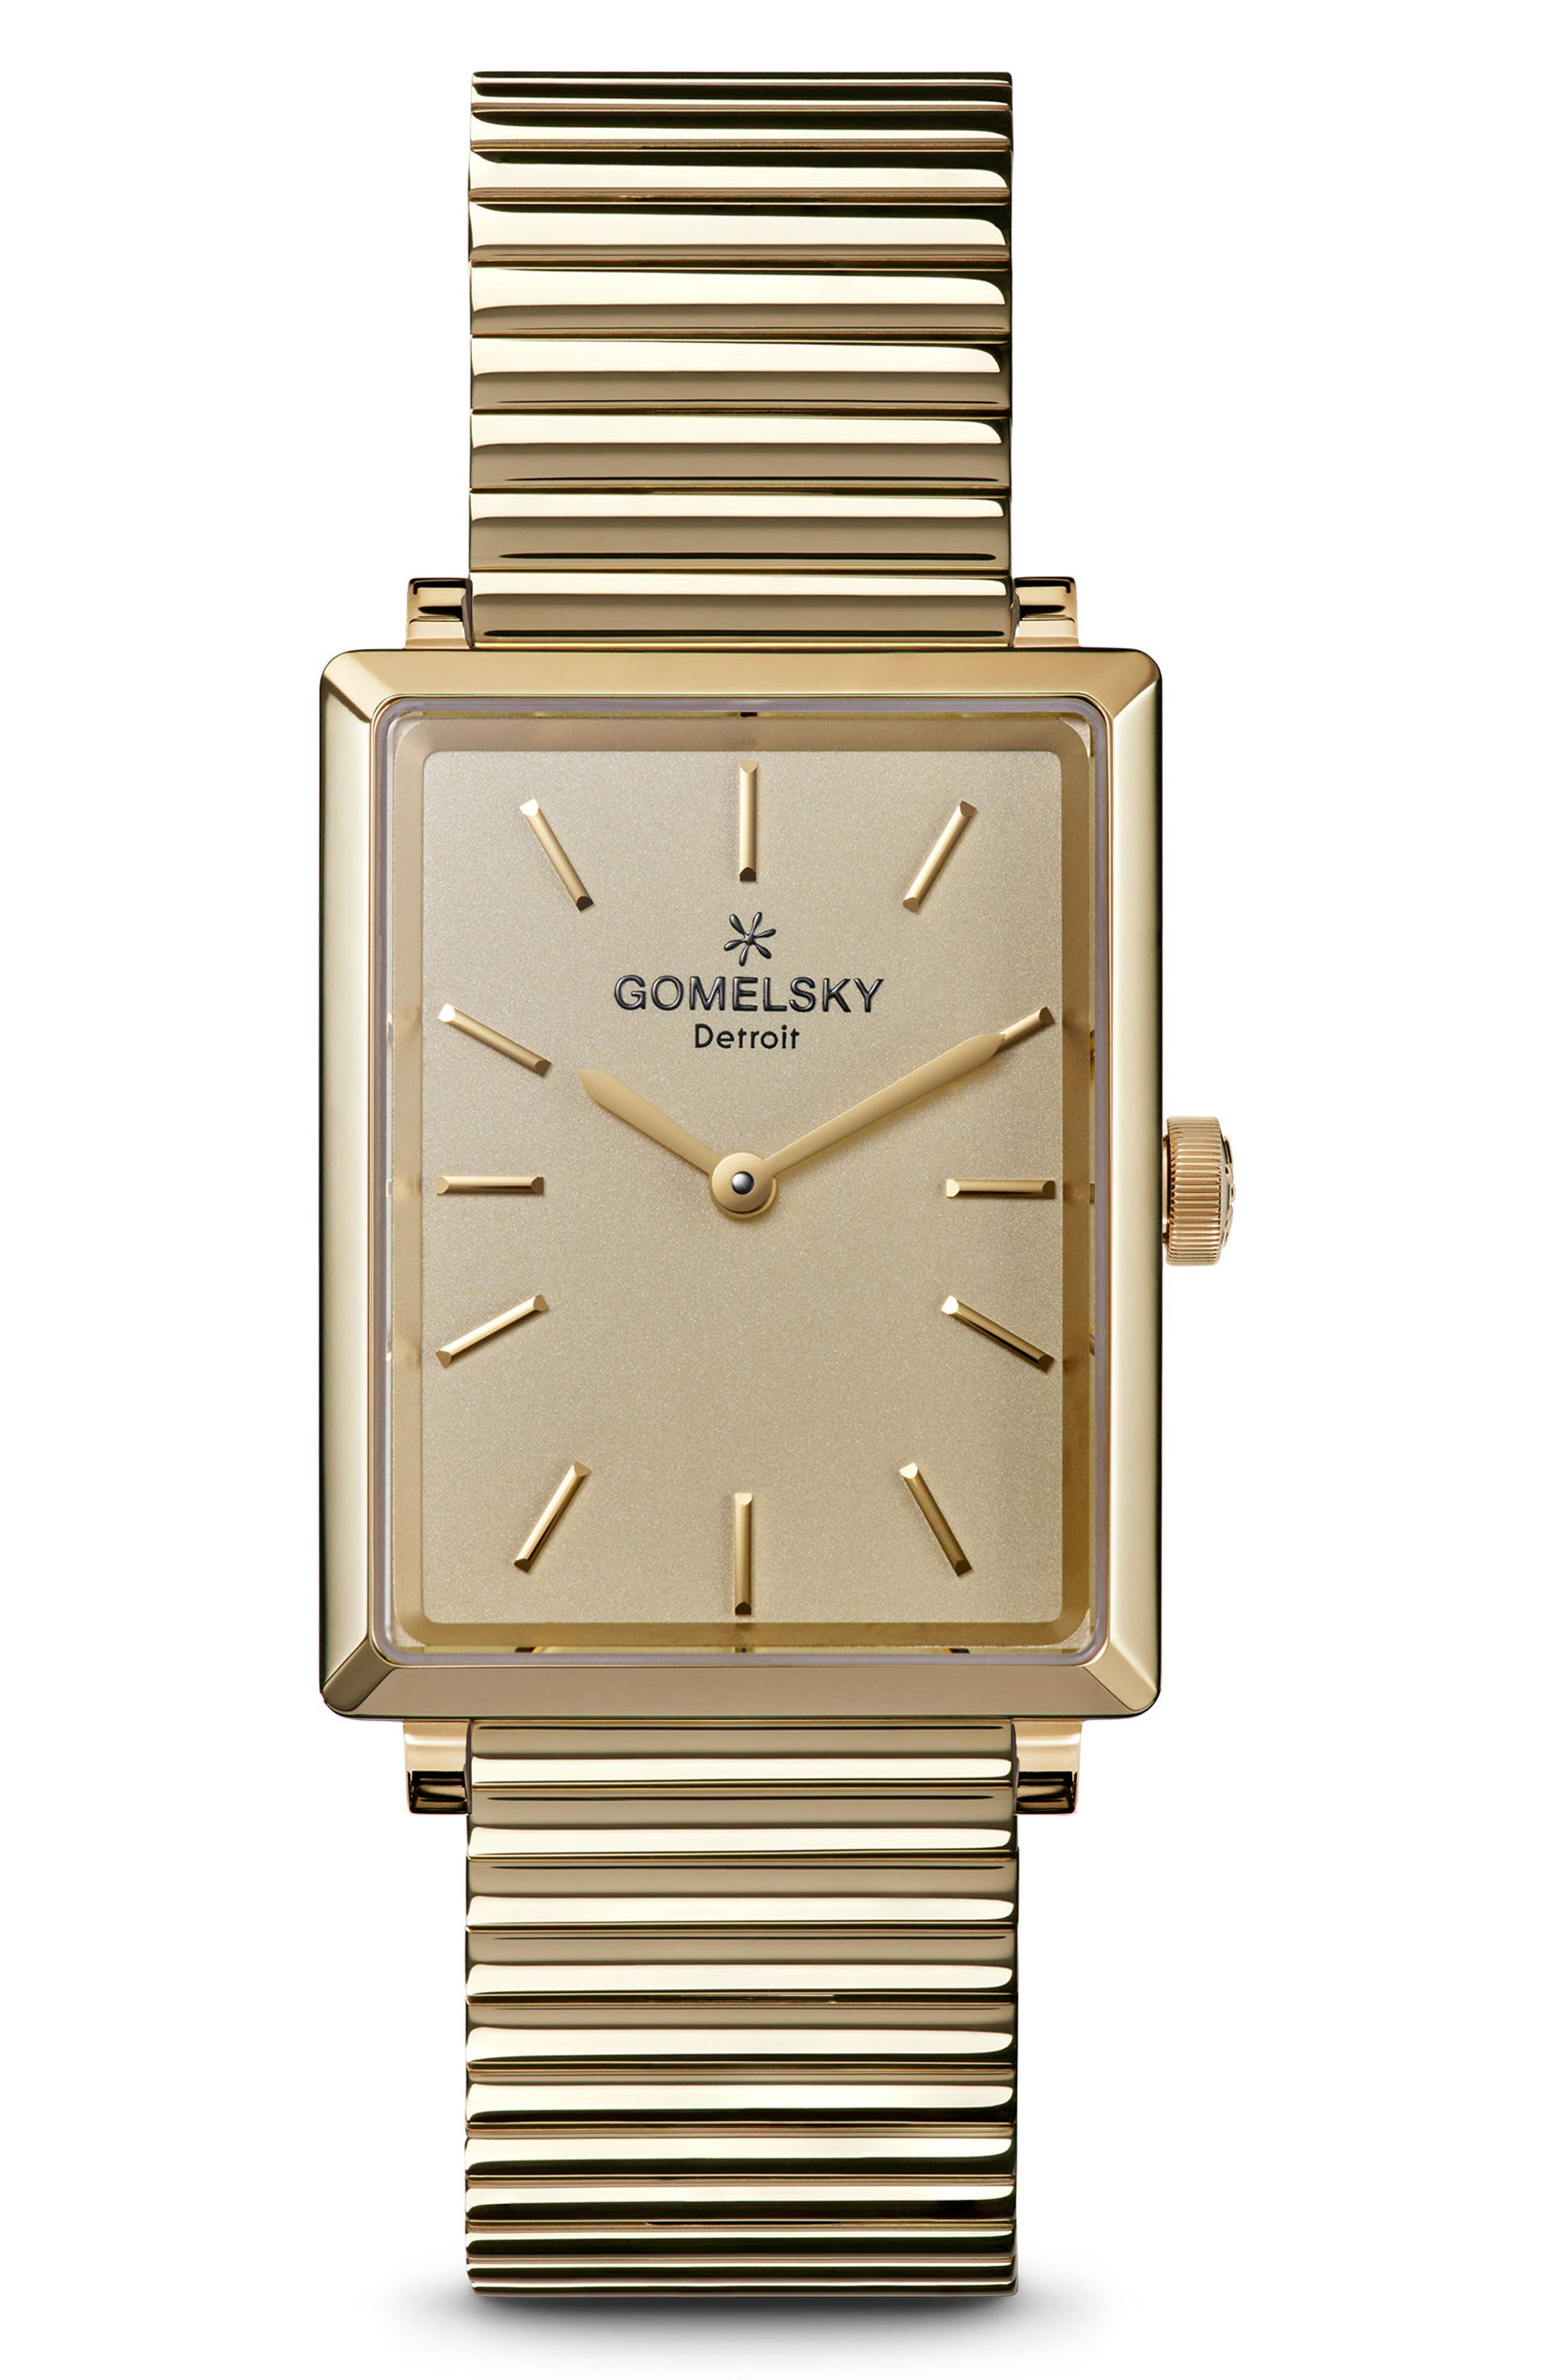 Main Image - Gomelsky The Shirley Fromer Bracelet Watch, 32mm x 25mm